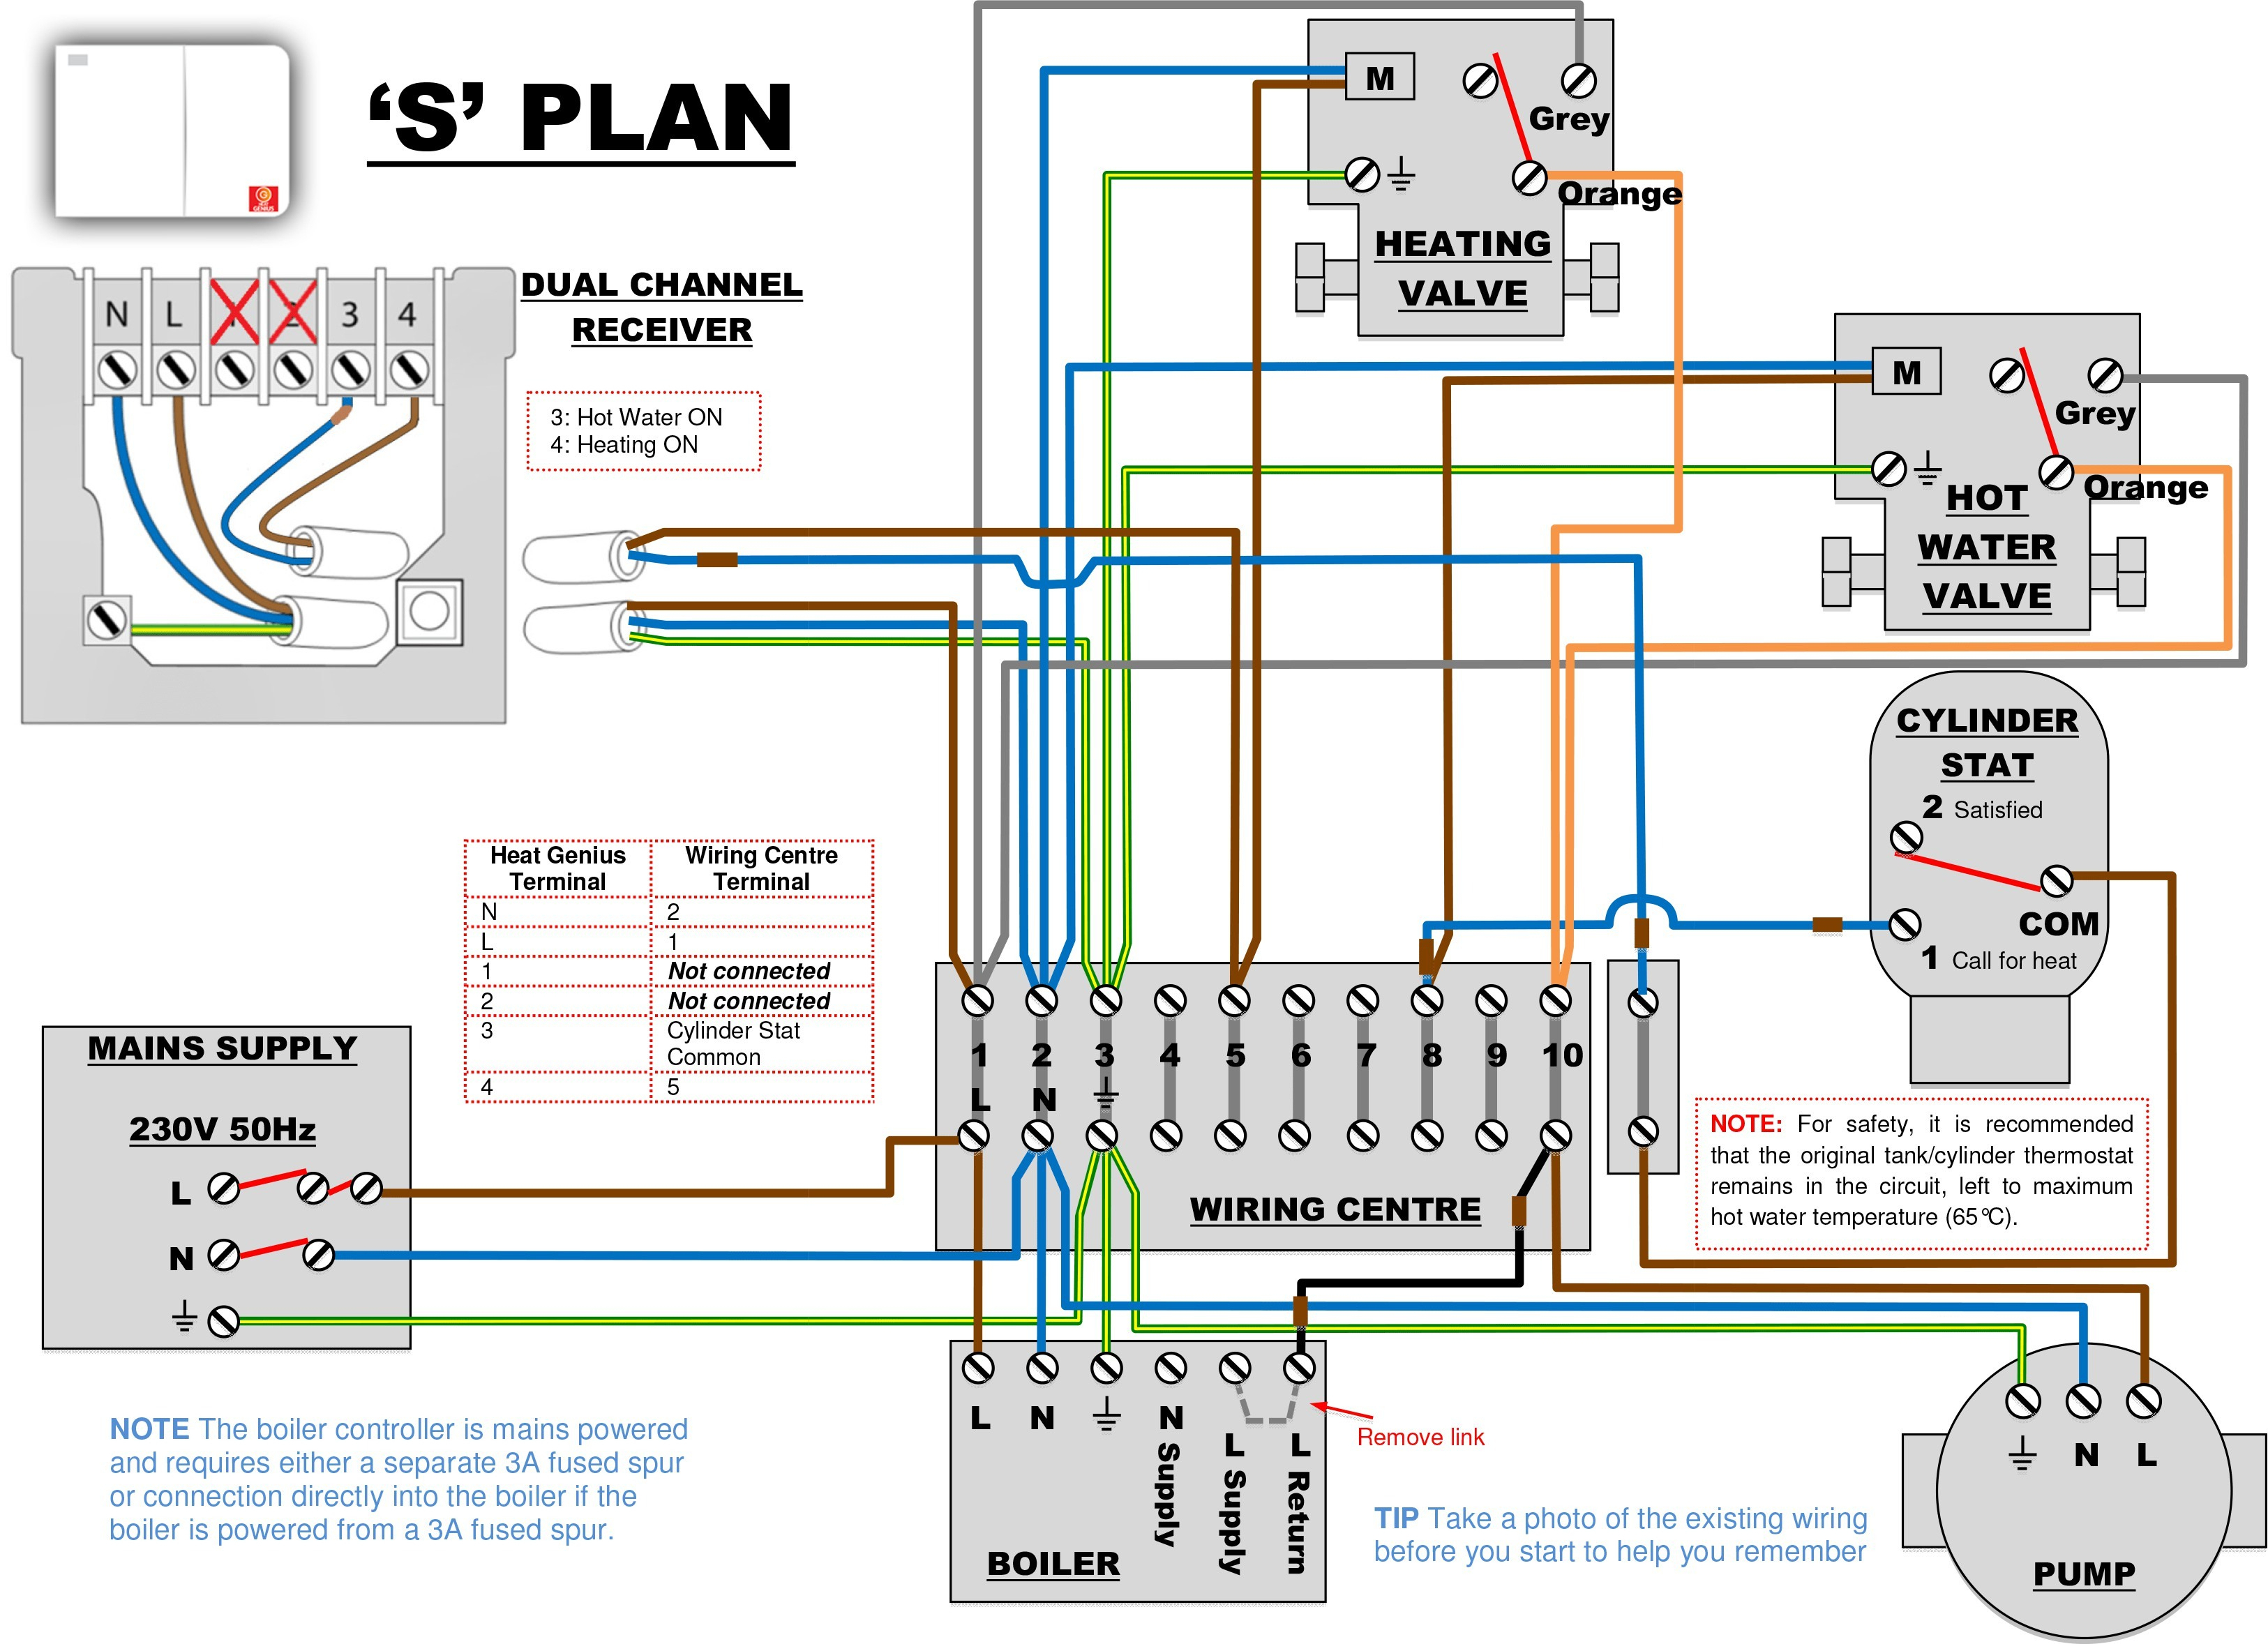 Nest Thermostat Heat Pump Wiring Diagram Heat Pump Thermostat Wiring - Wiring Diagram For Heat Pumps For Nest